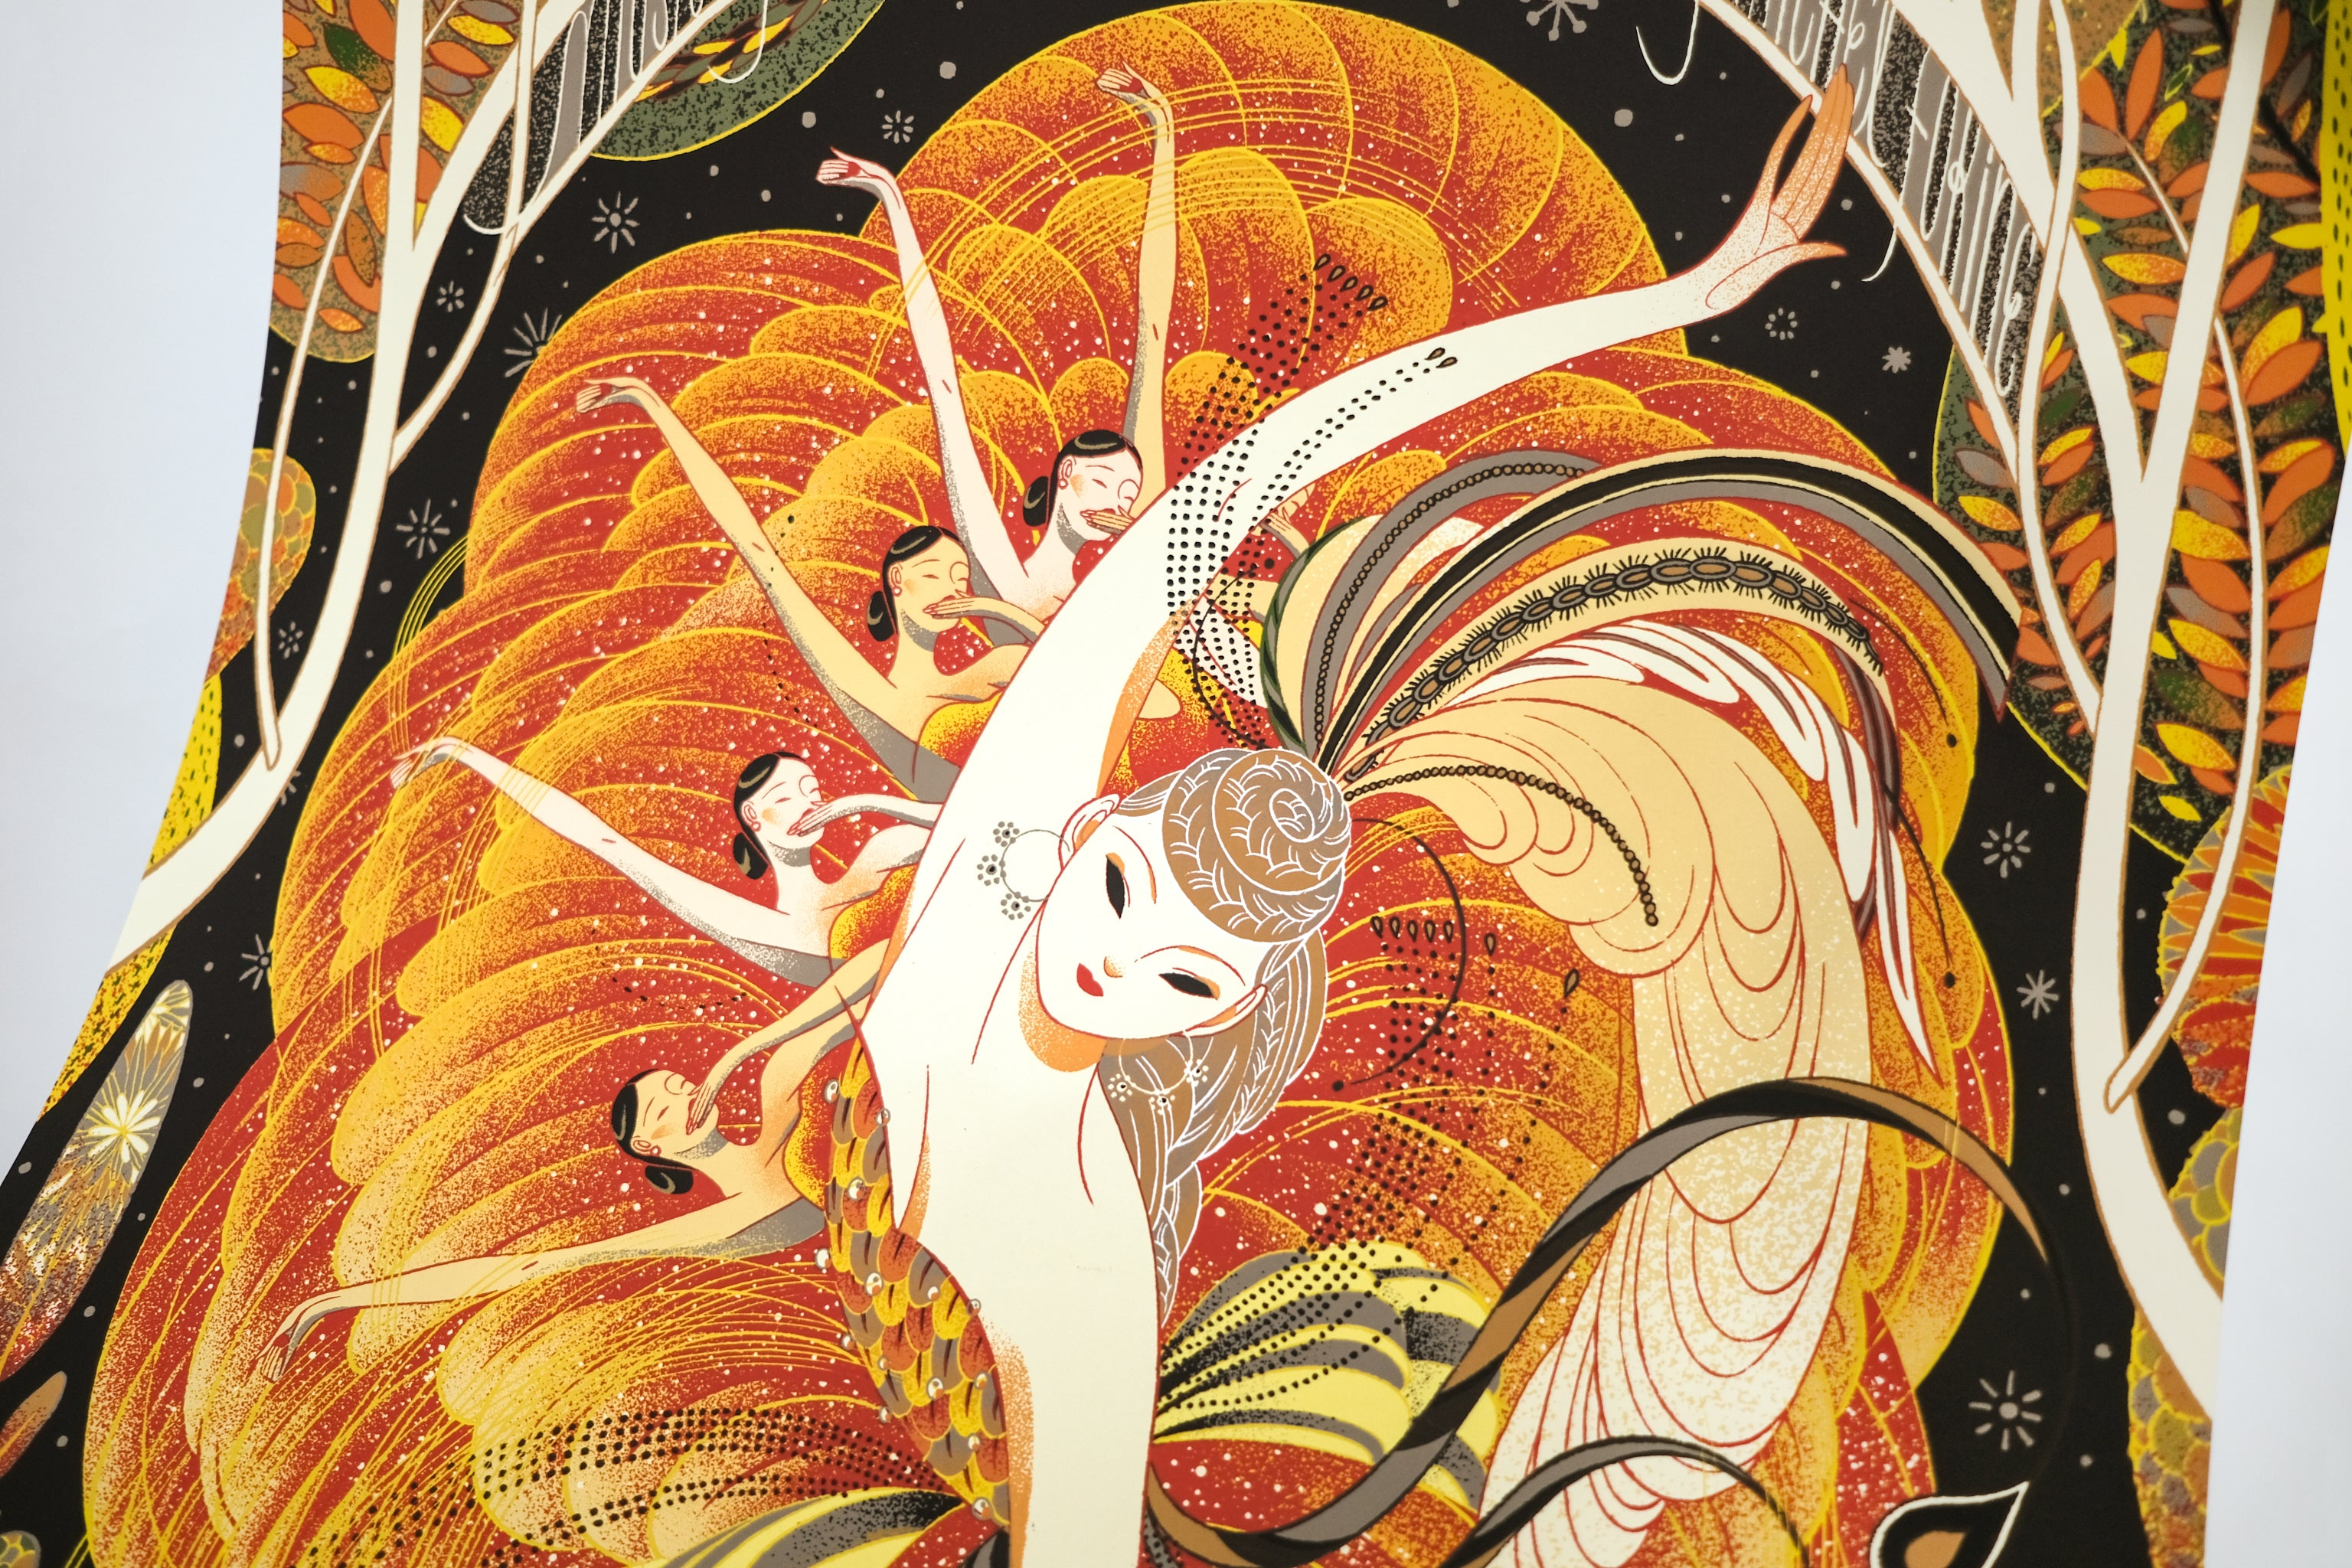 Firebird—screen print by Victo Ngai